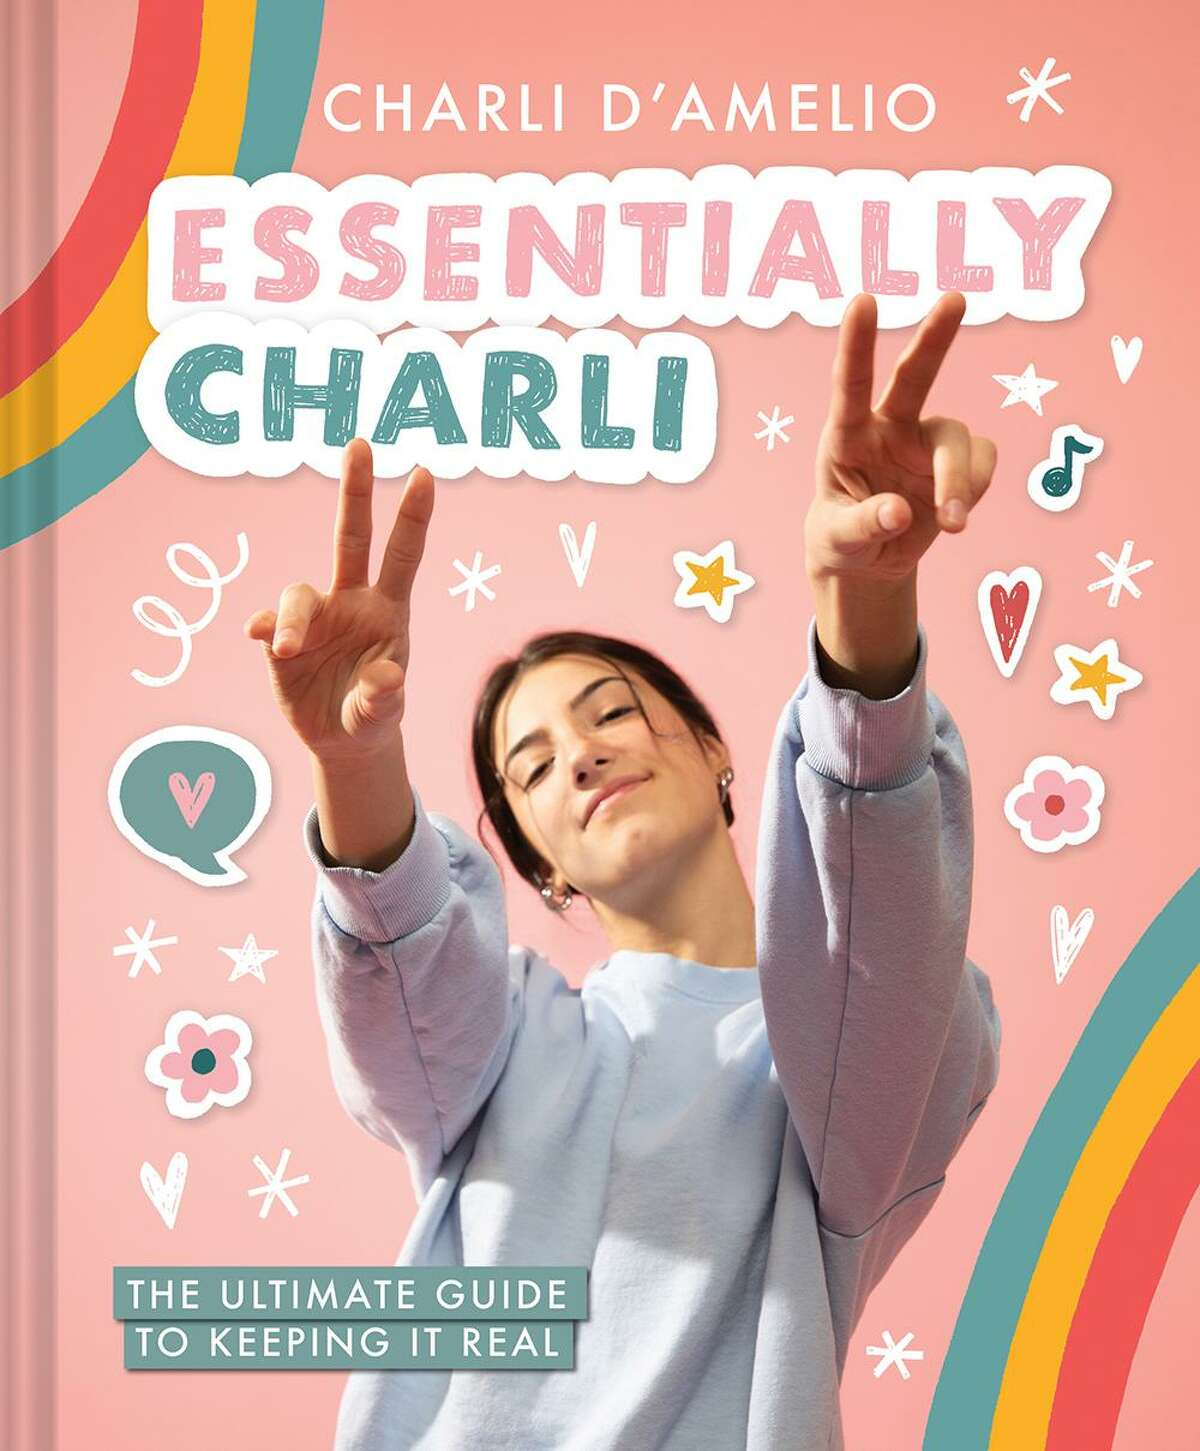 Norwalk native and TikTok star Charli D'Amelio published her book